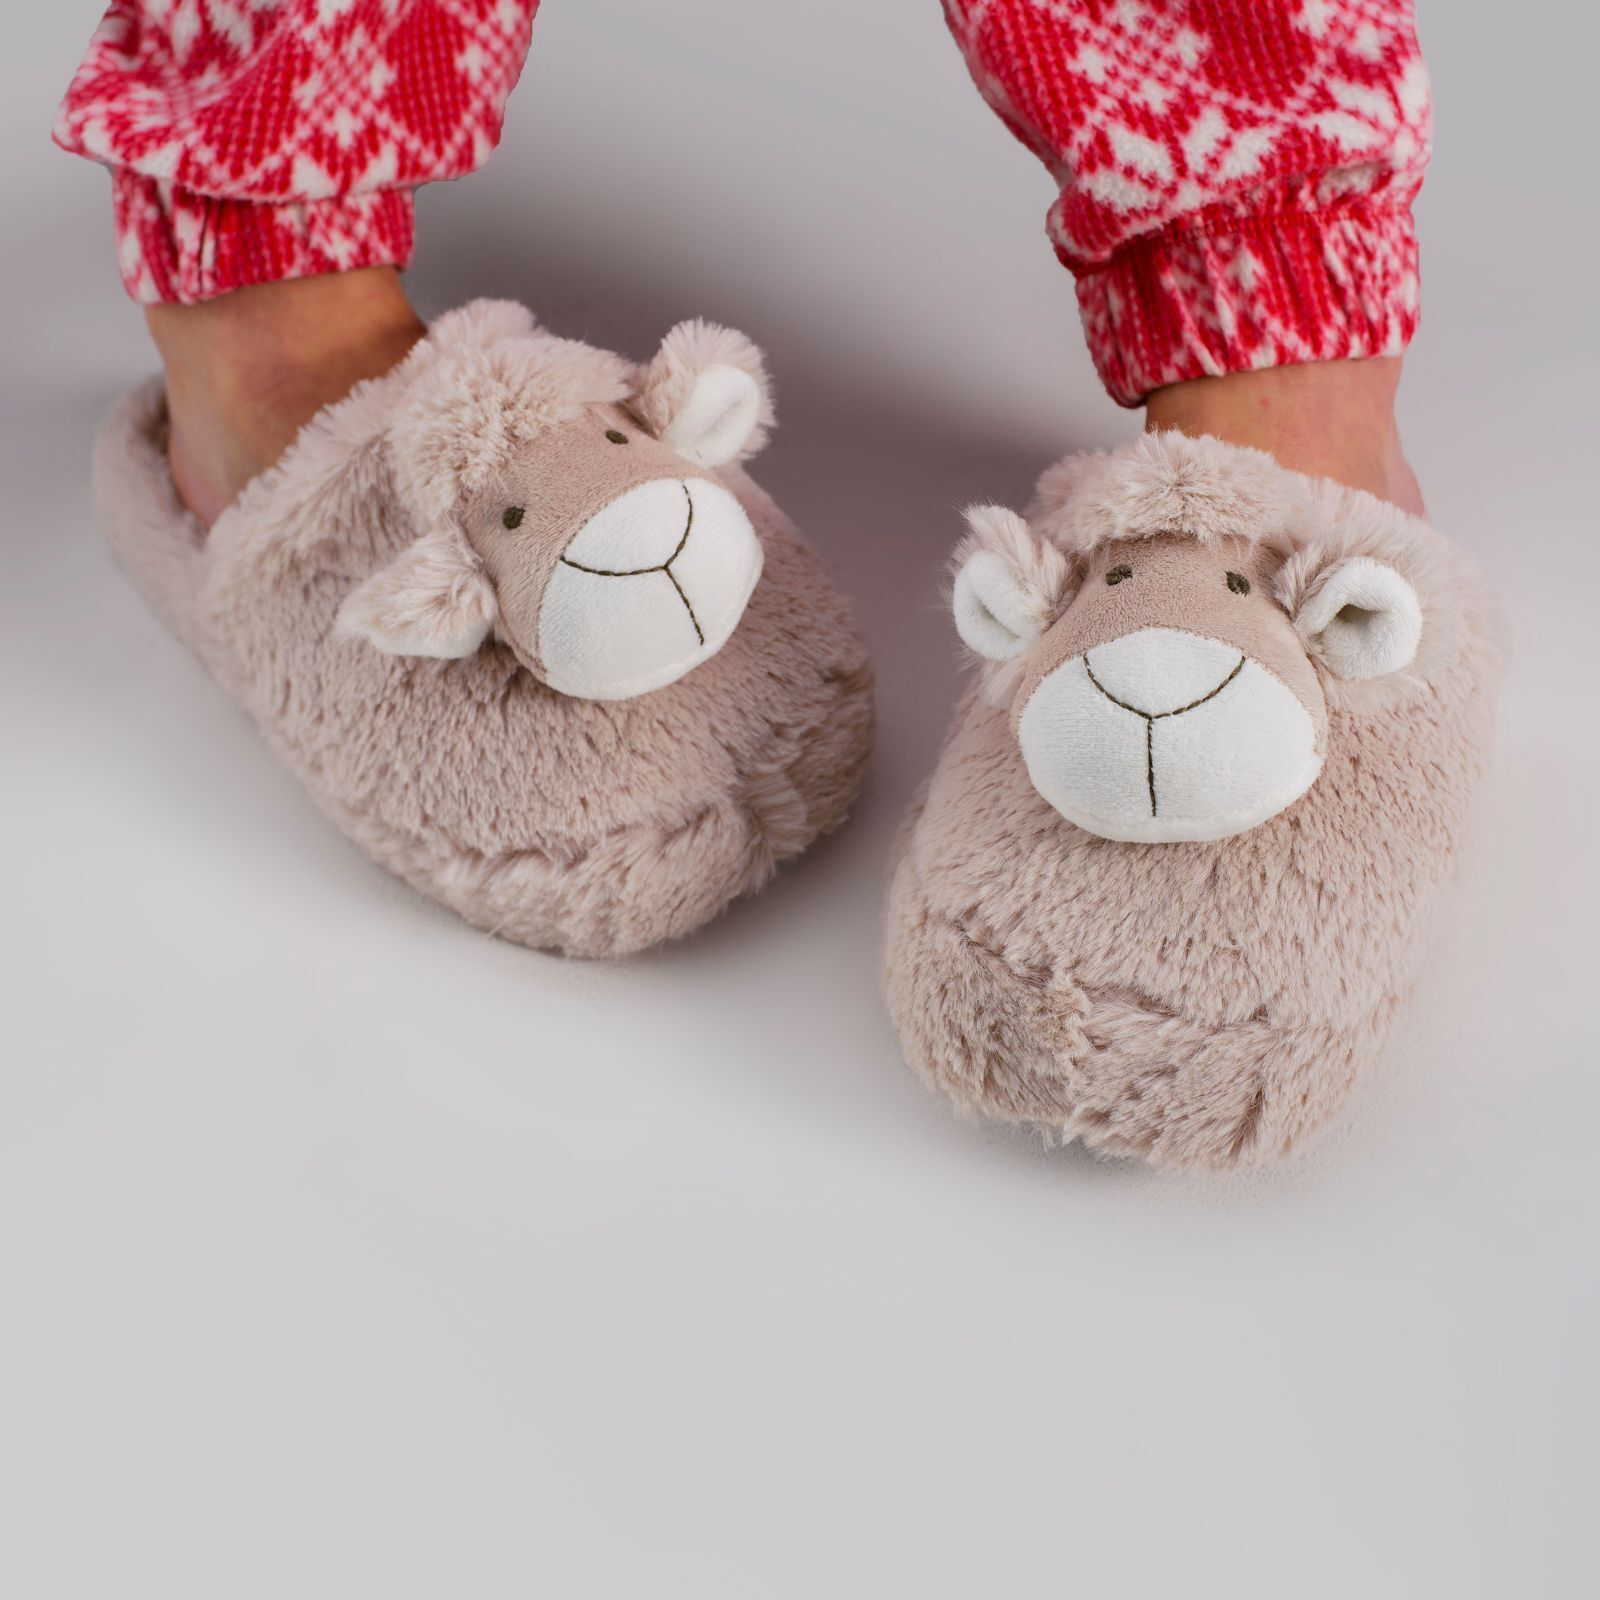 Zhu-Zhu Furry Animal Head Slippers - Soft Plush - Sheep Lamb Novelty Slippers